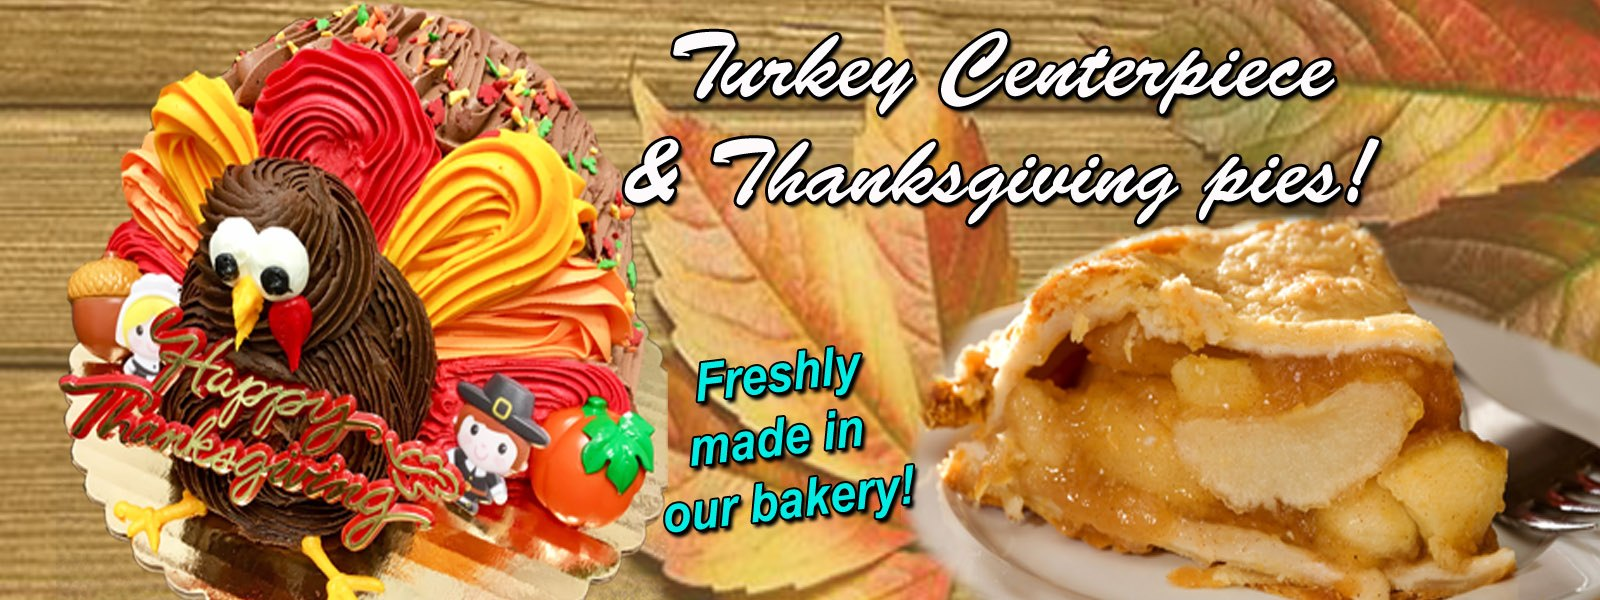 Thanksgiving Pies & Cakes!